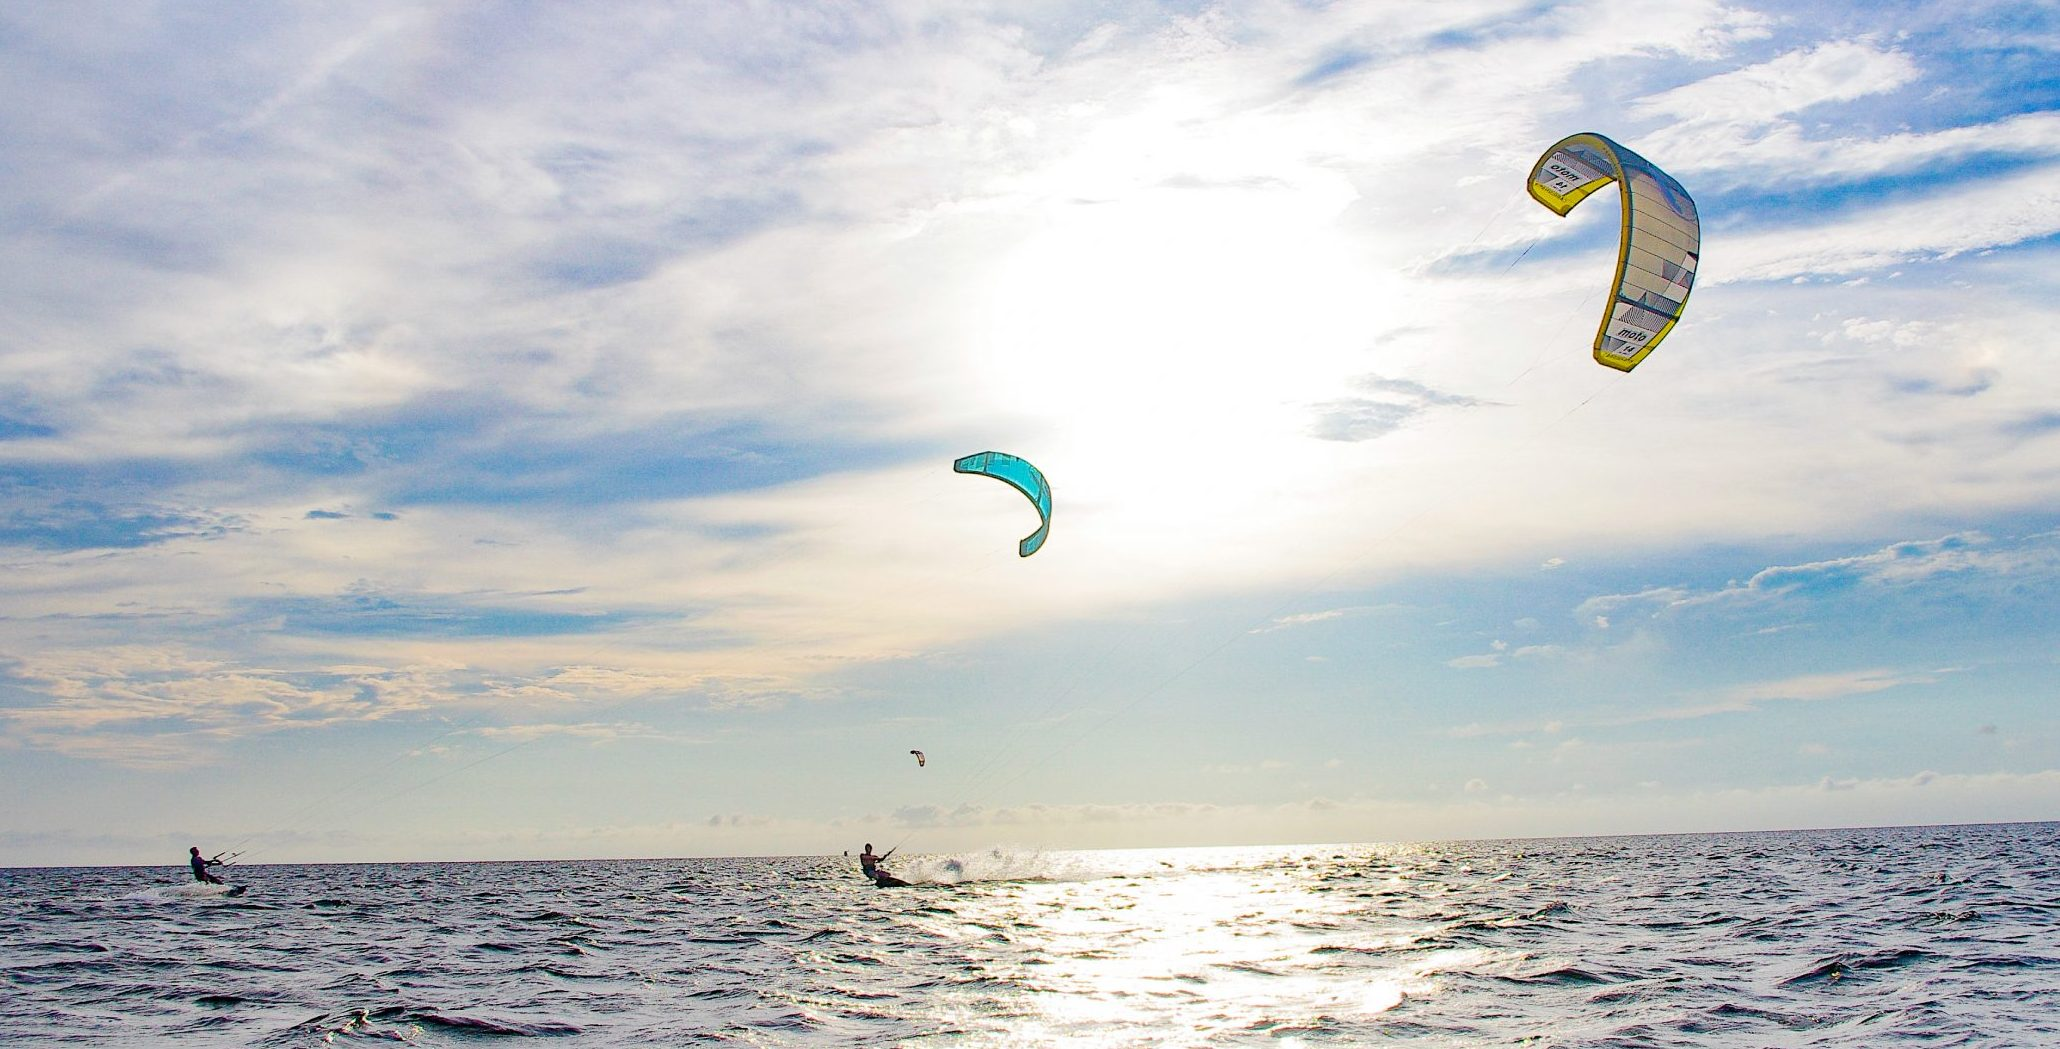 Outer Banks kiteboarders in Rodanthe, NC